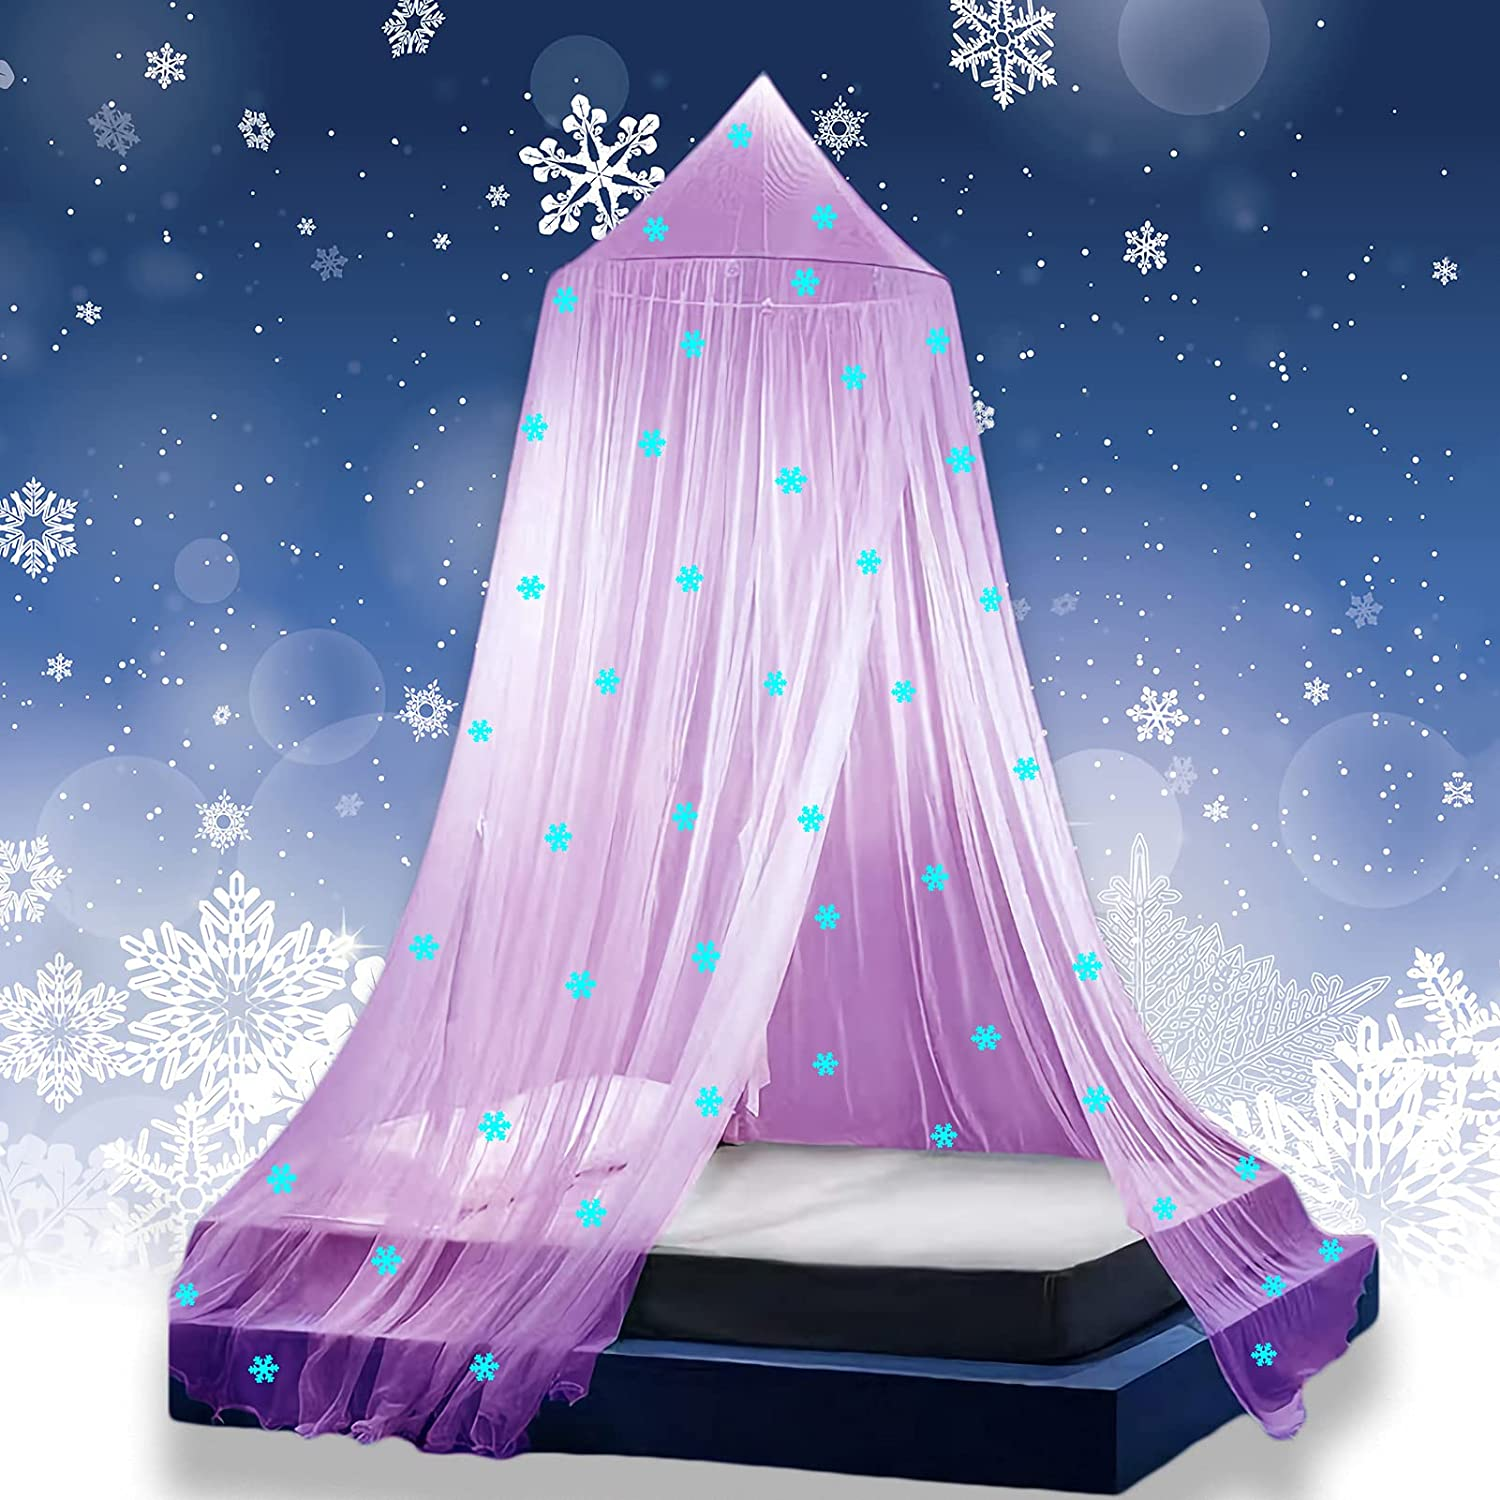 Princess Girls Bed Canopy with Glow in The Dark Snowflakes, Freezing Bed Canopy for Girls Room Decor by Eimilaly, Encrypted Fabric, Pink